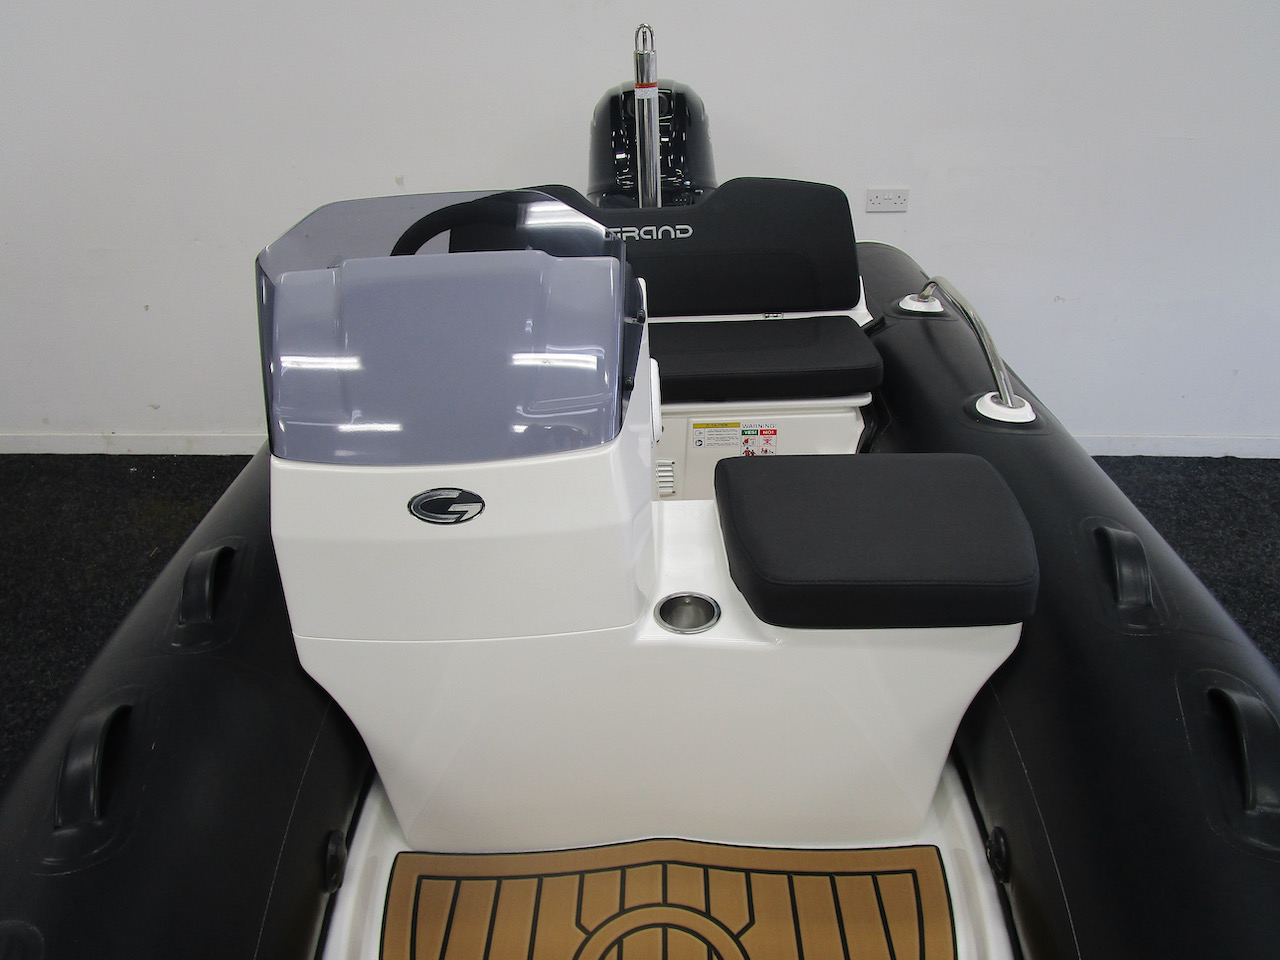 G340N Console front and side seat